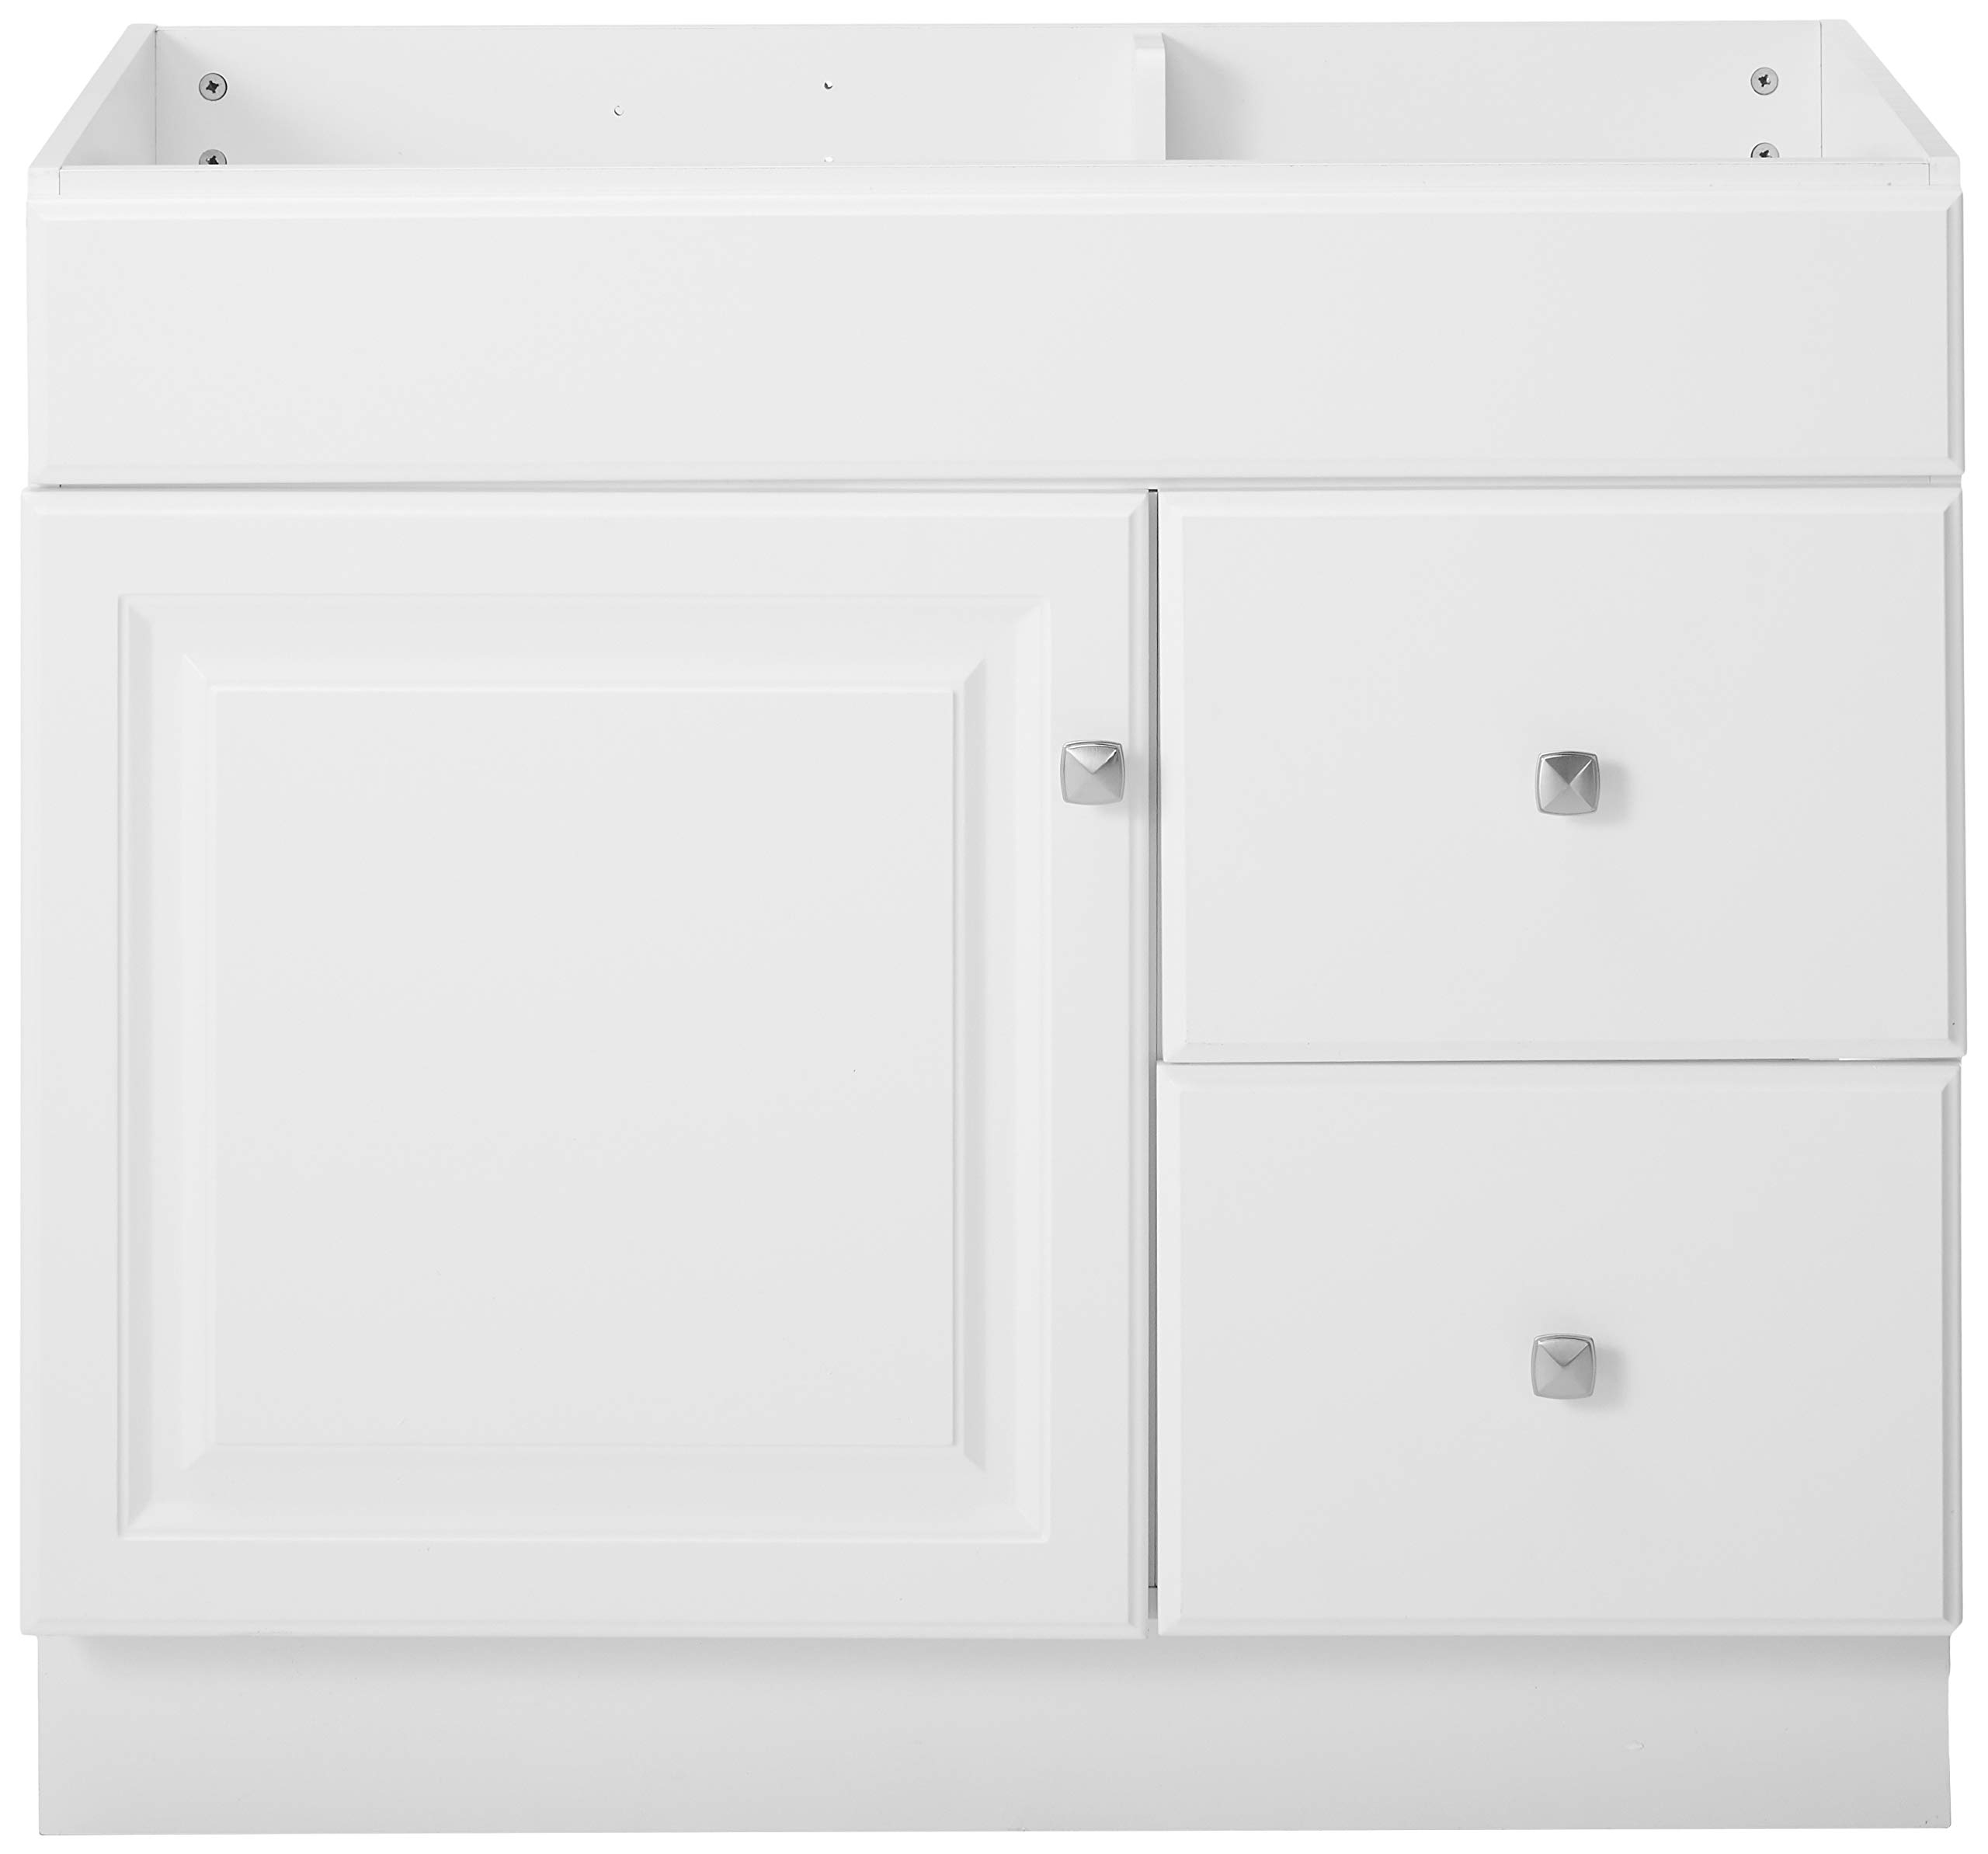 """Design House 531954 Wyndham Ready-To-Assemble 1 Door/2 Drawer Vanity, White, 36""""W x 31.5""""T 21""""D, Cabinet Only - Cabinet only. Top sold separate. 2-drawer construction gives you plenty of storage for toiletries Measures 36-inches wide by 31.5-inches tall by 21-inches deep - bathroom-vanities, bathroom-fixtures-hardware, bathroom - 71RMAUqIfTL -"""